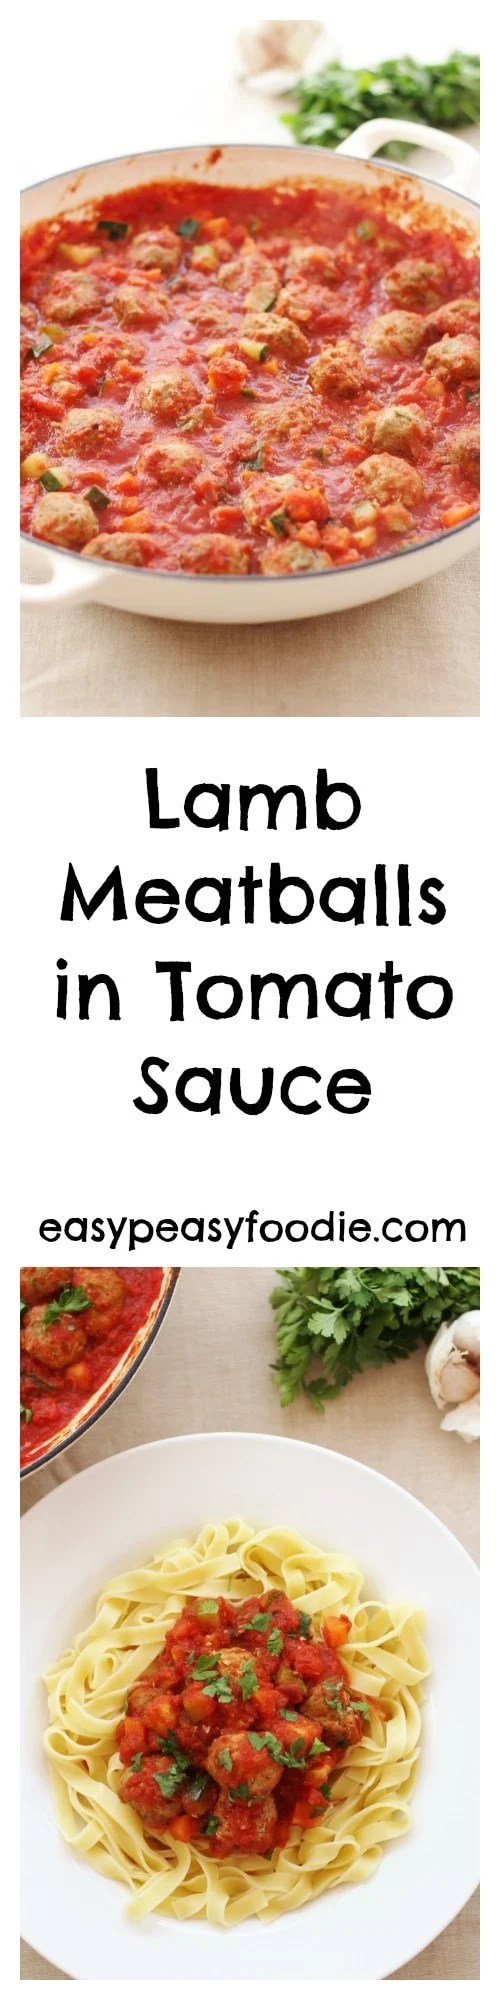 Simple, delicious and very family friendly, these Lamb Meatballs in Tomato Sauce are perfect for a busy weeknight. #lamb #lovelamb #lambmeatballs #tomatosauce #pasta #taglietelle #noodles #kidfriendly #kidfood #comfortfood #winterfood #easypeasyfoodie #cookblogshare #freefromgang